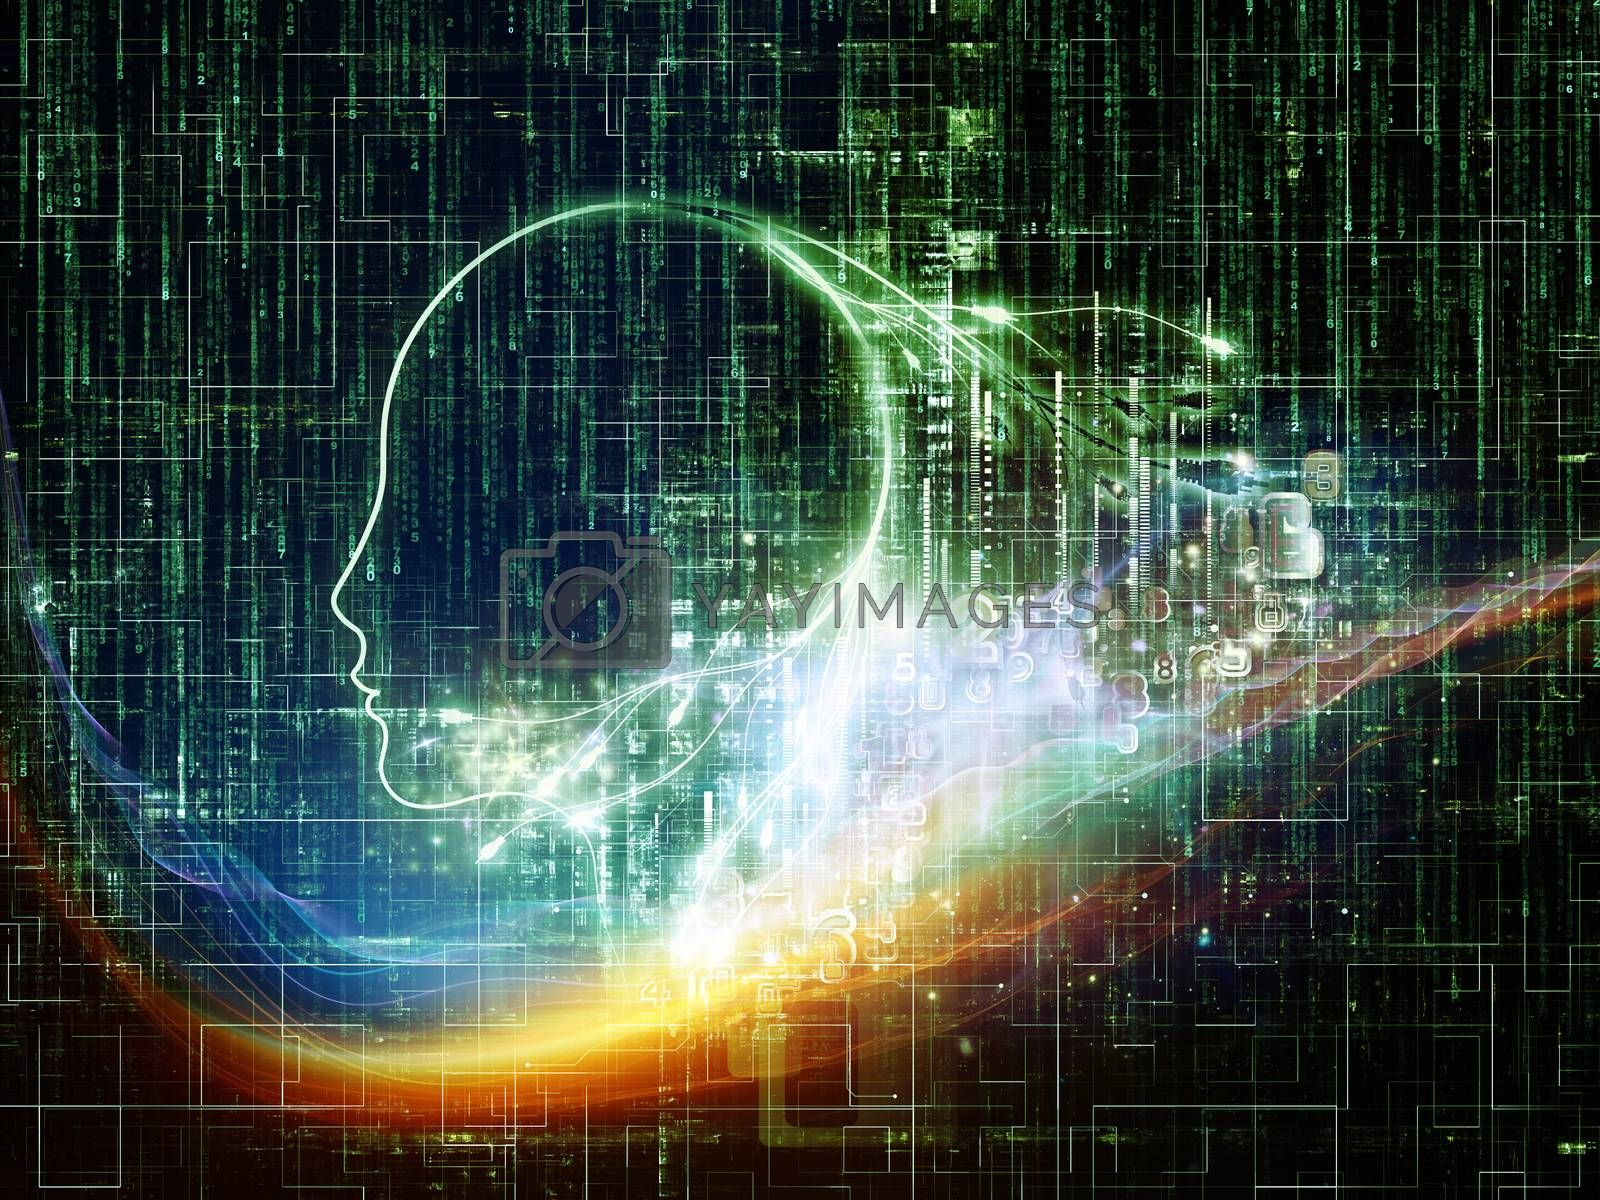 Artificial Intelligence series. Background design of human profile and numbers on the subject of thinking, logic, computers and future technology